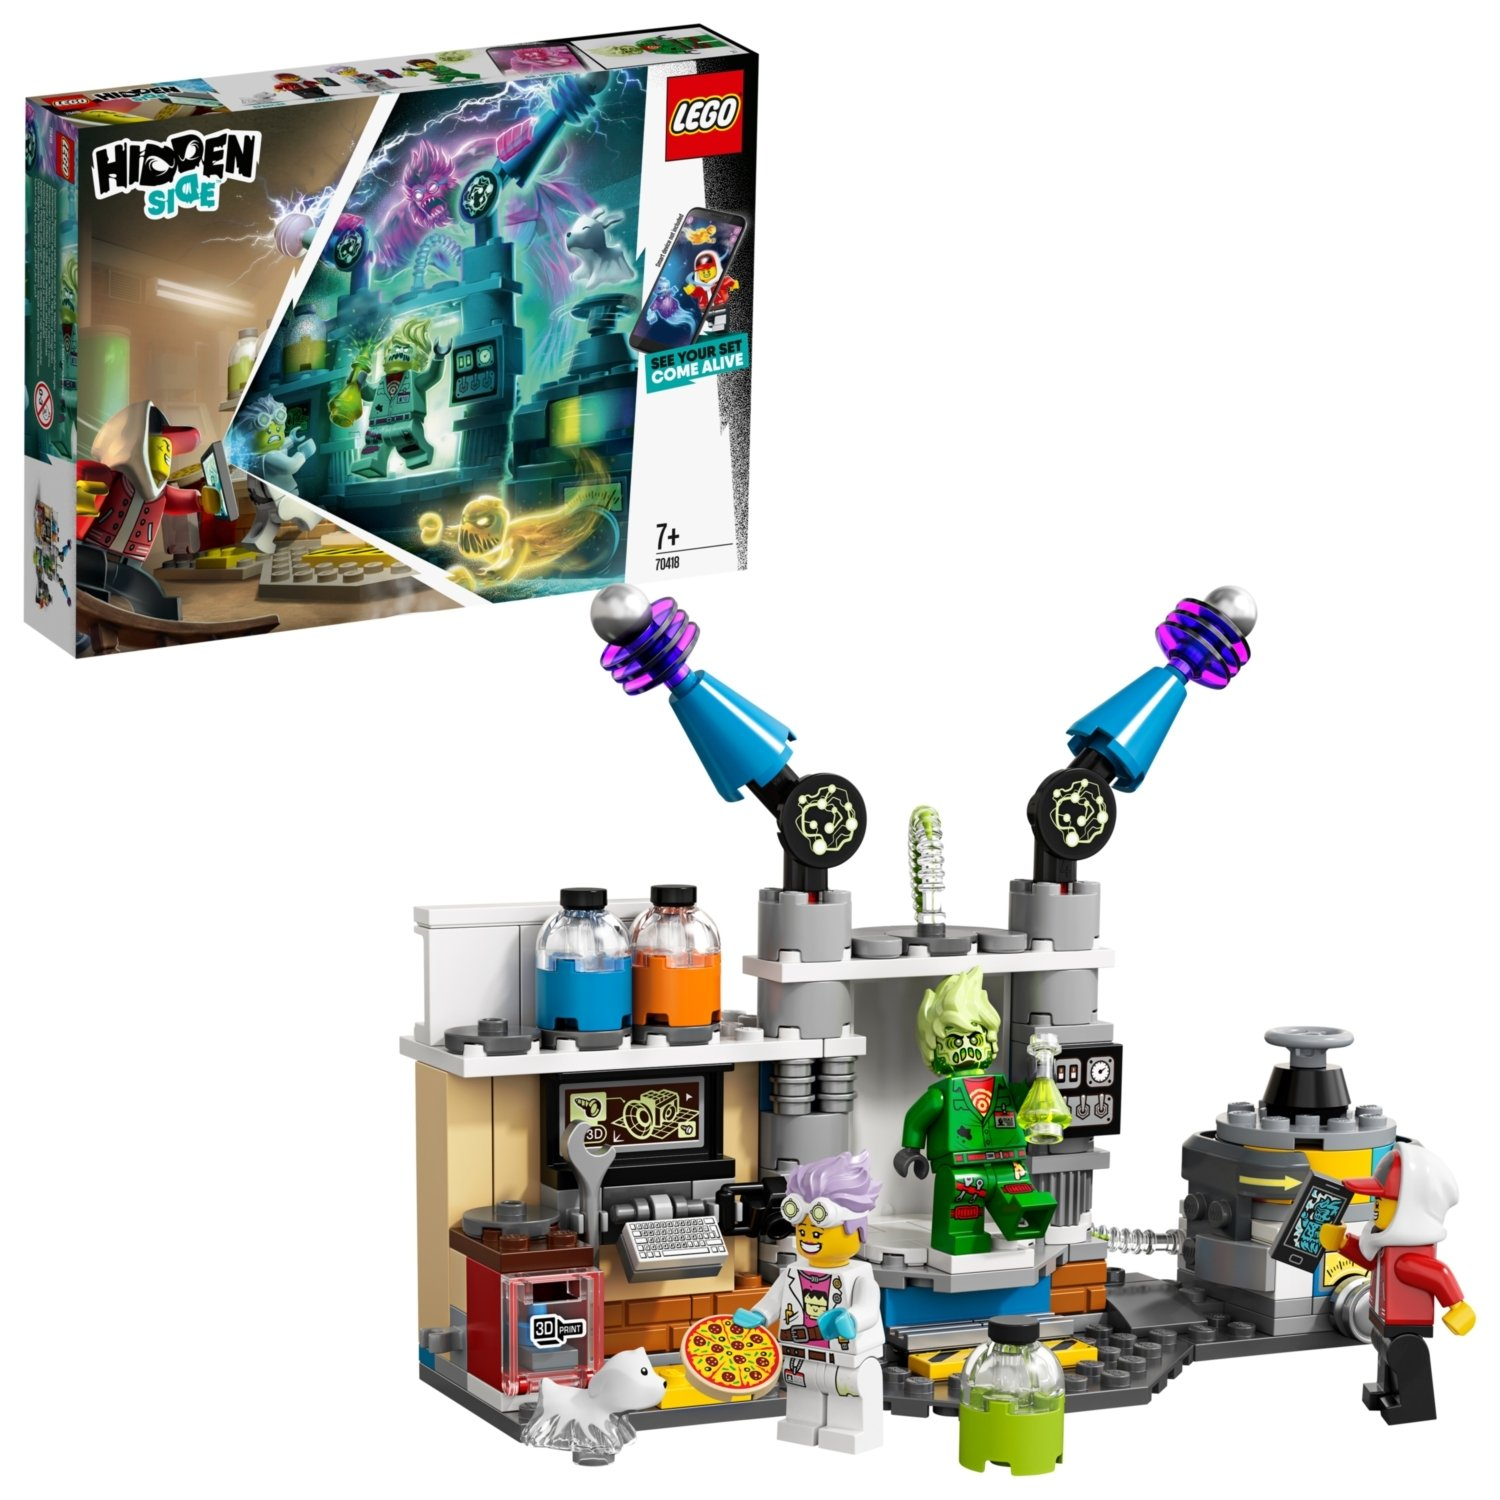 LEGO Hidden Side J.B.'s Ghost Lab Set - 70418